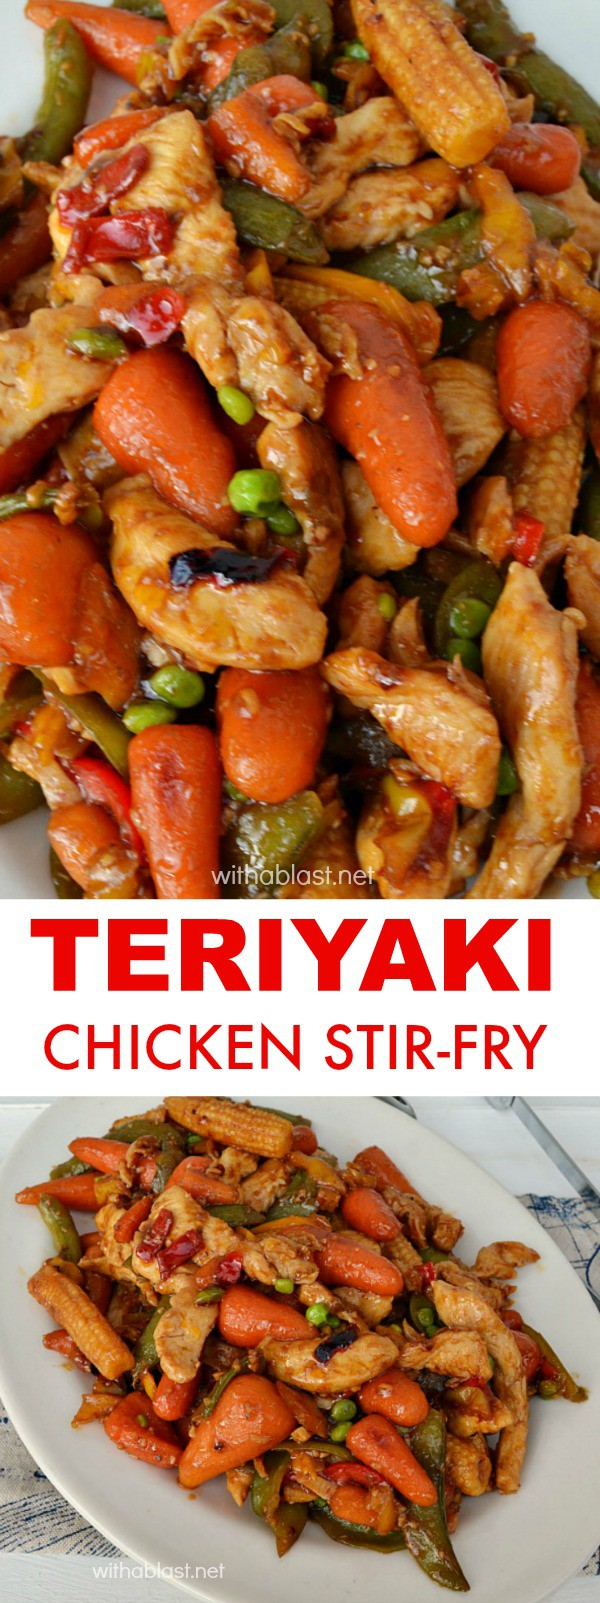 Teriyaki Chicken Stir-Fry is a quick, easy and perfect last minute dinner #ChickenRecipes #TeriyakiChicken #StirFryRecipes